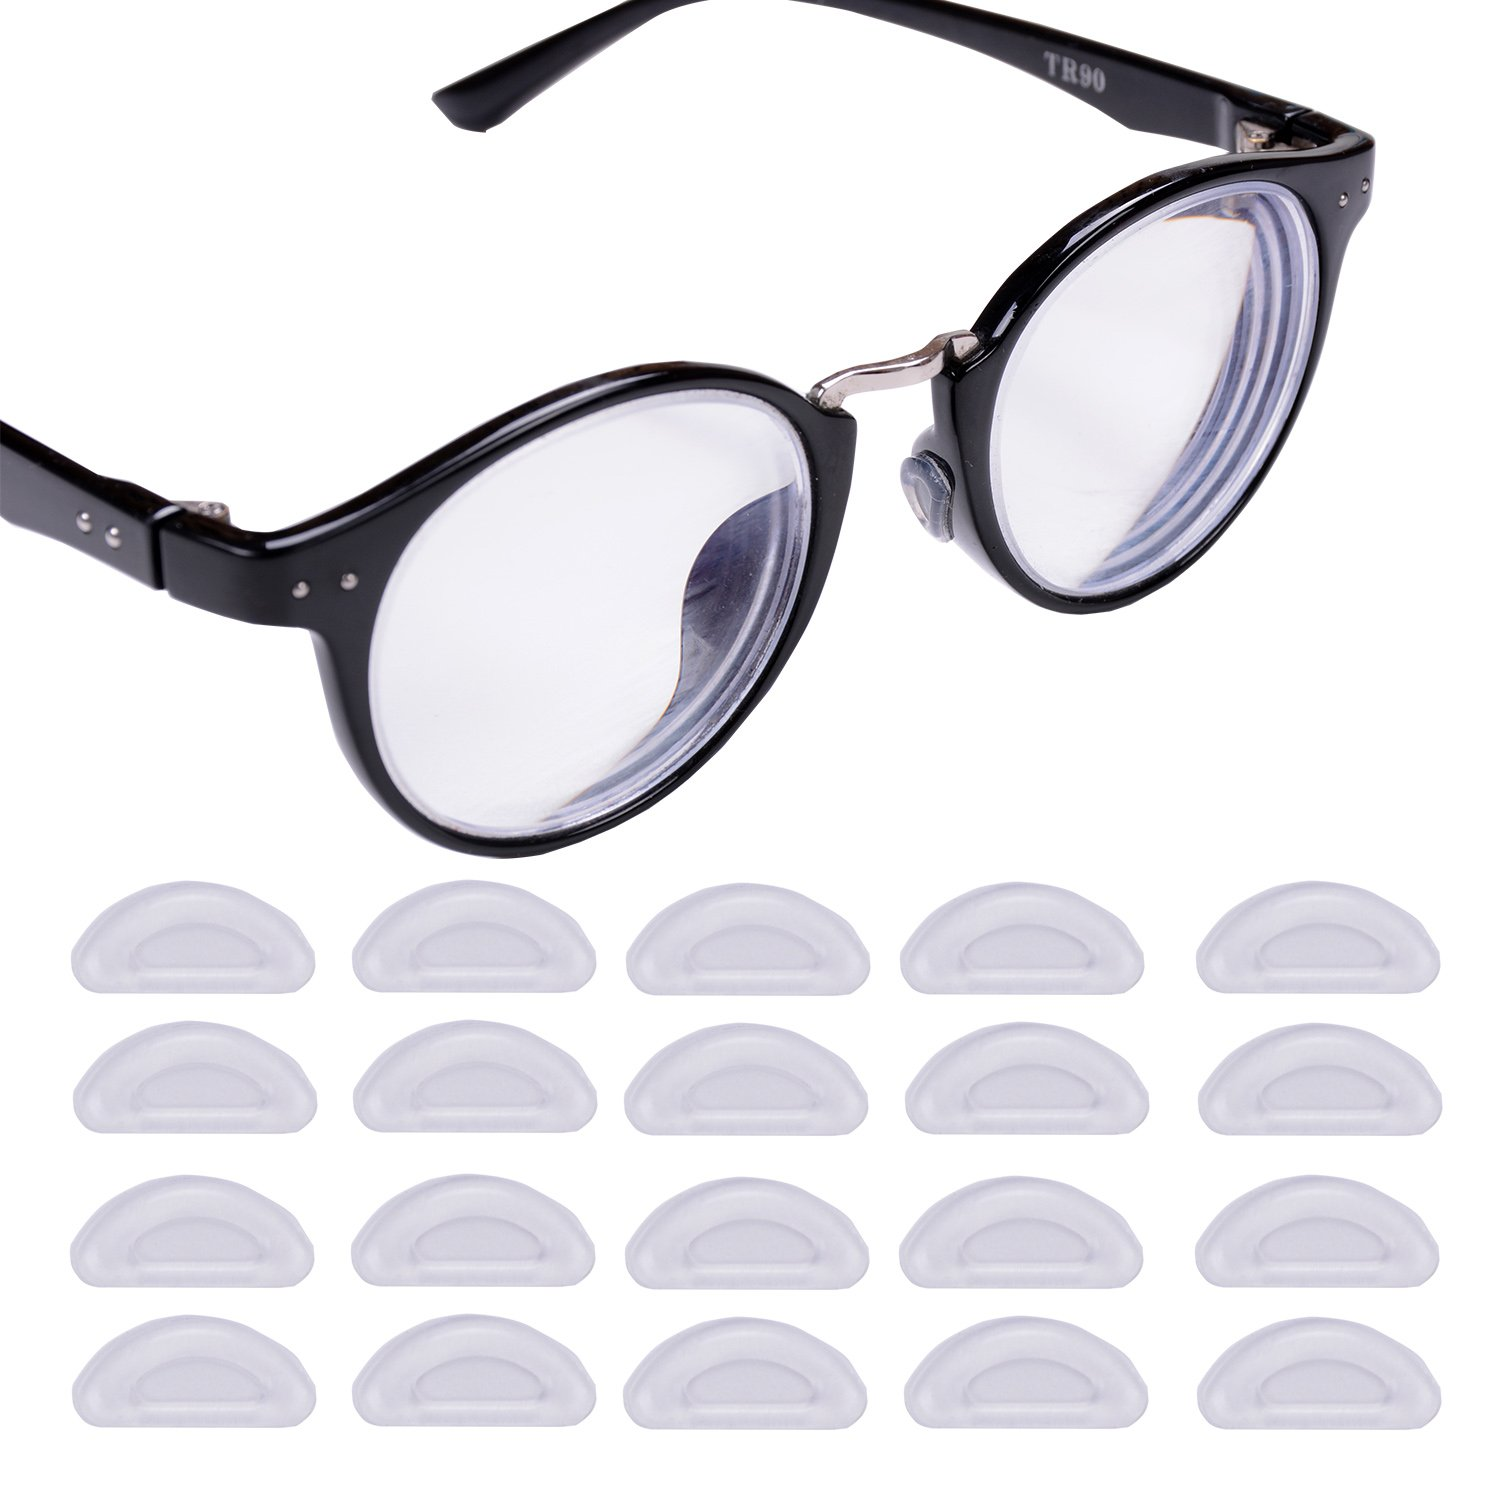 eMingo 10 Pairs Anti-Slip Small Nose Pads Adhesive Silicone Pads for Eyeglass Sunglasses Spectacles ,1.5mm (Clear)